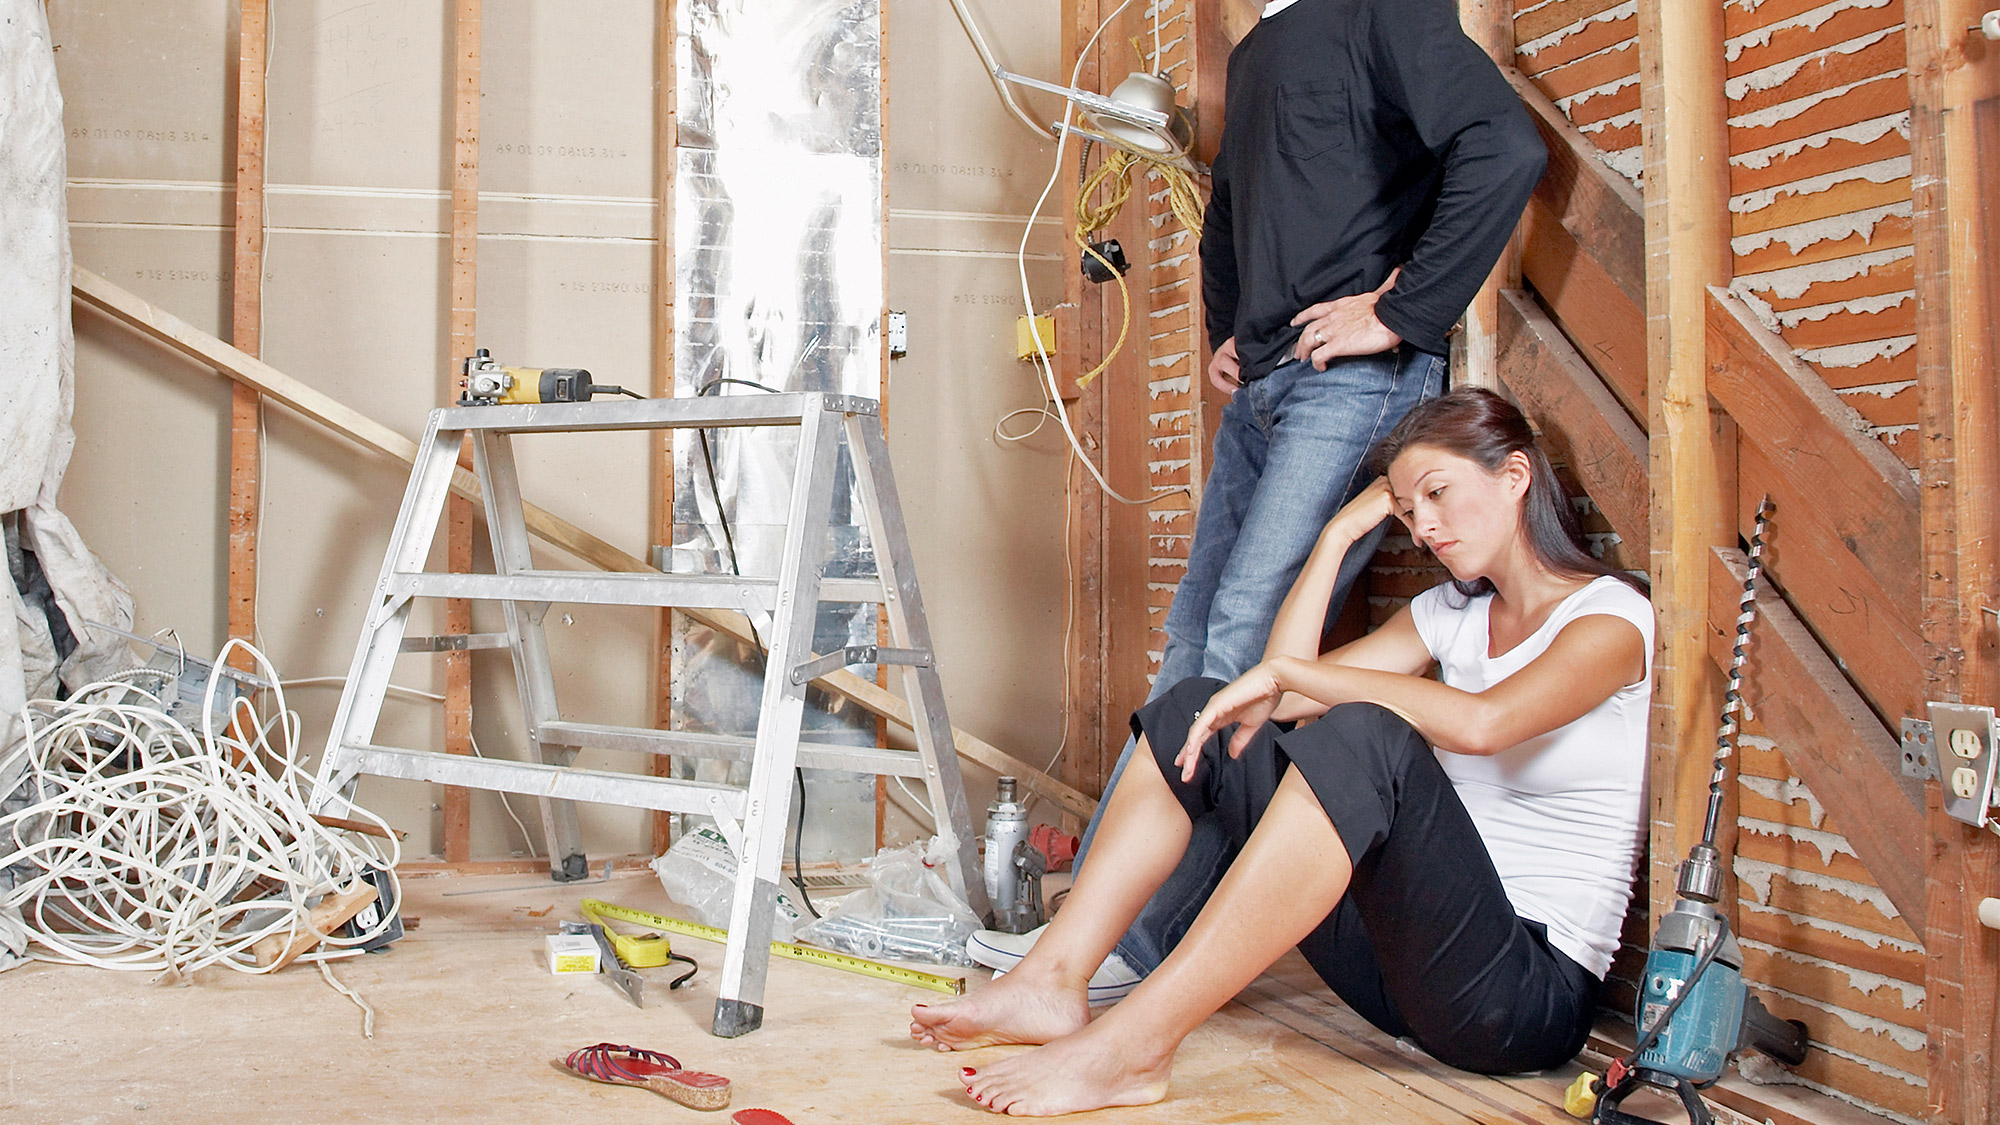 Homeowners' Worst Renovation Blunders (Are You Guilty of Any?)